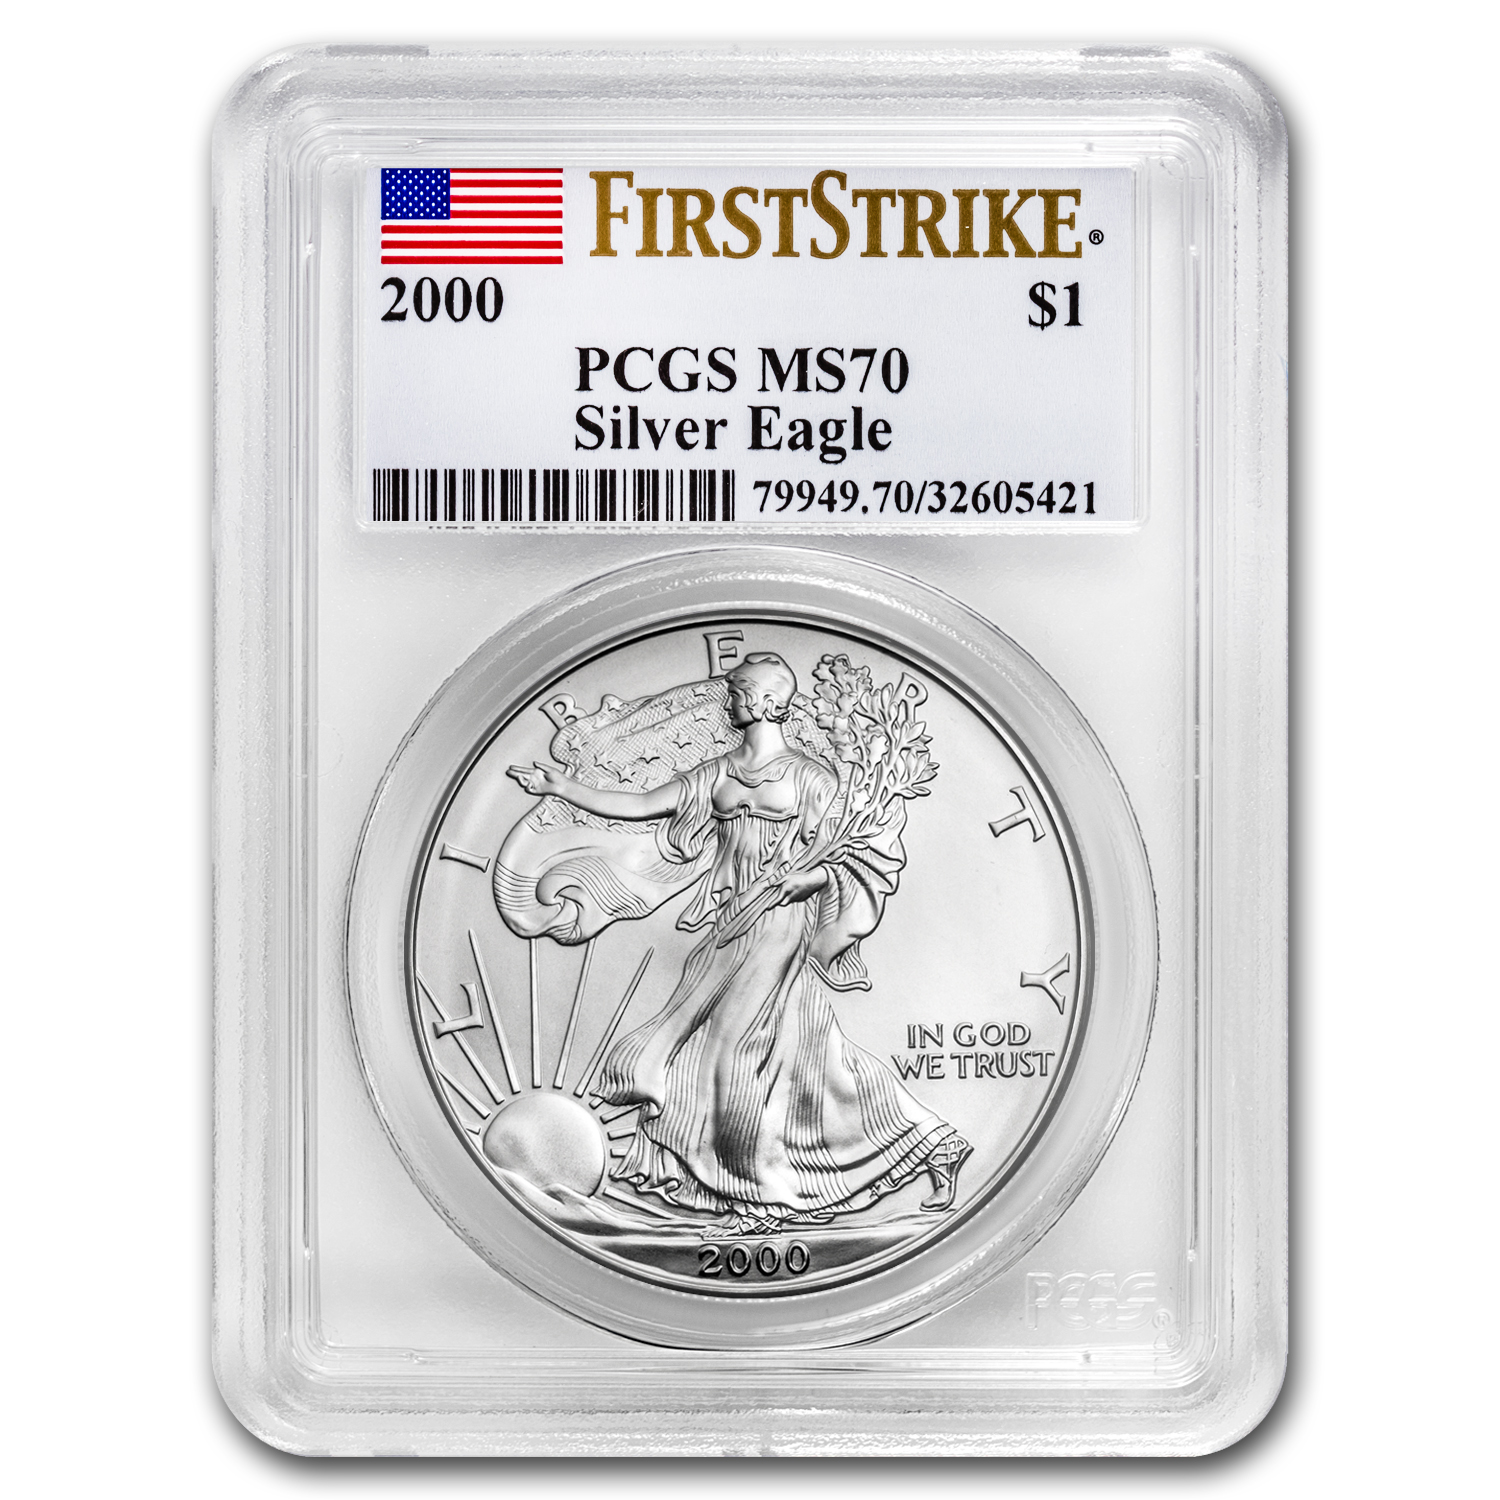 2000 1 oz Silver American Eagle MS-70 PCGS (First Strike)